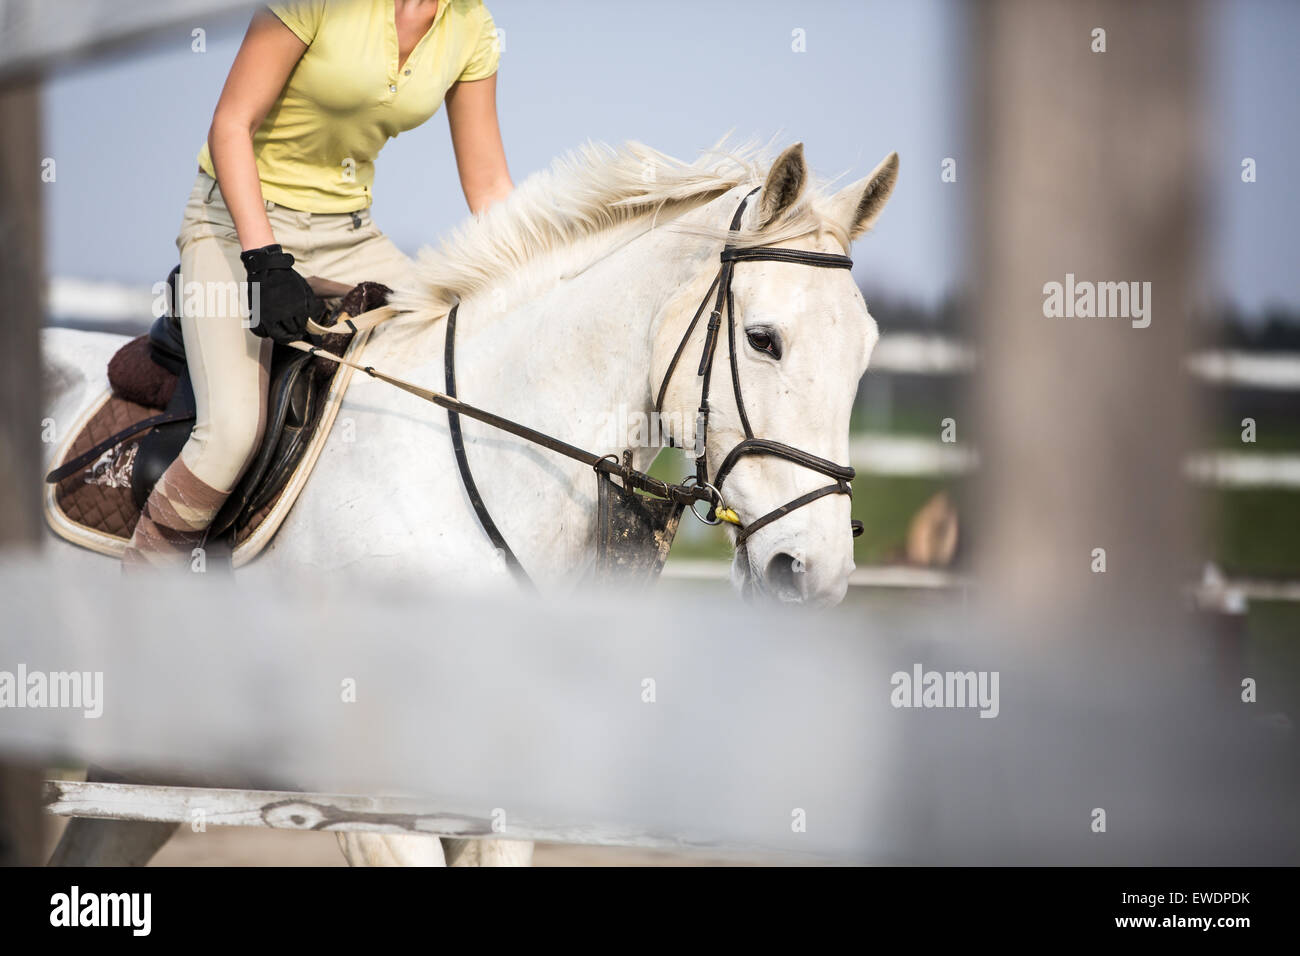 Young woman show jumping with horse - Stock Image